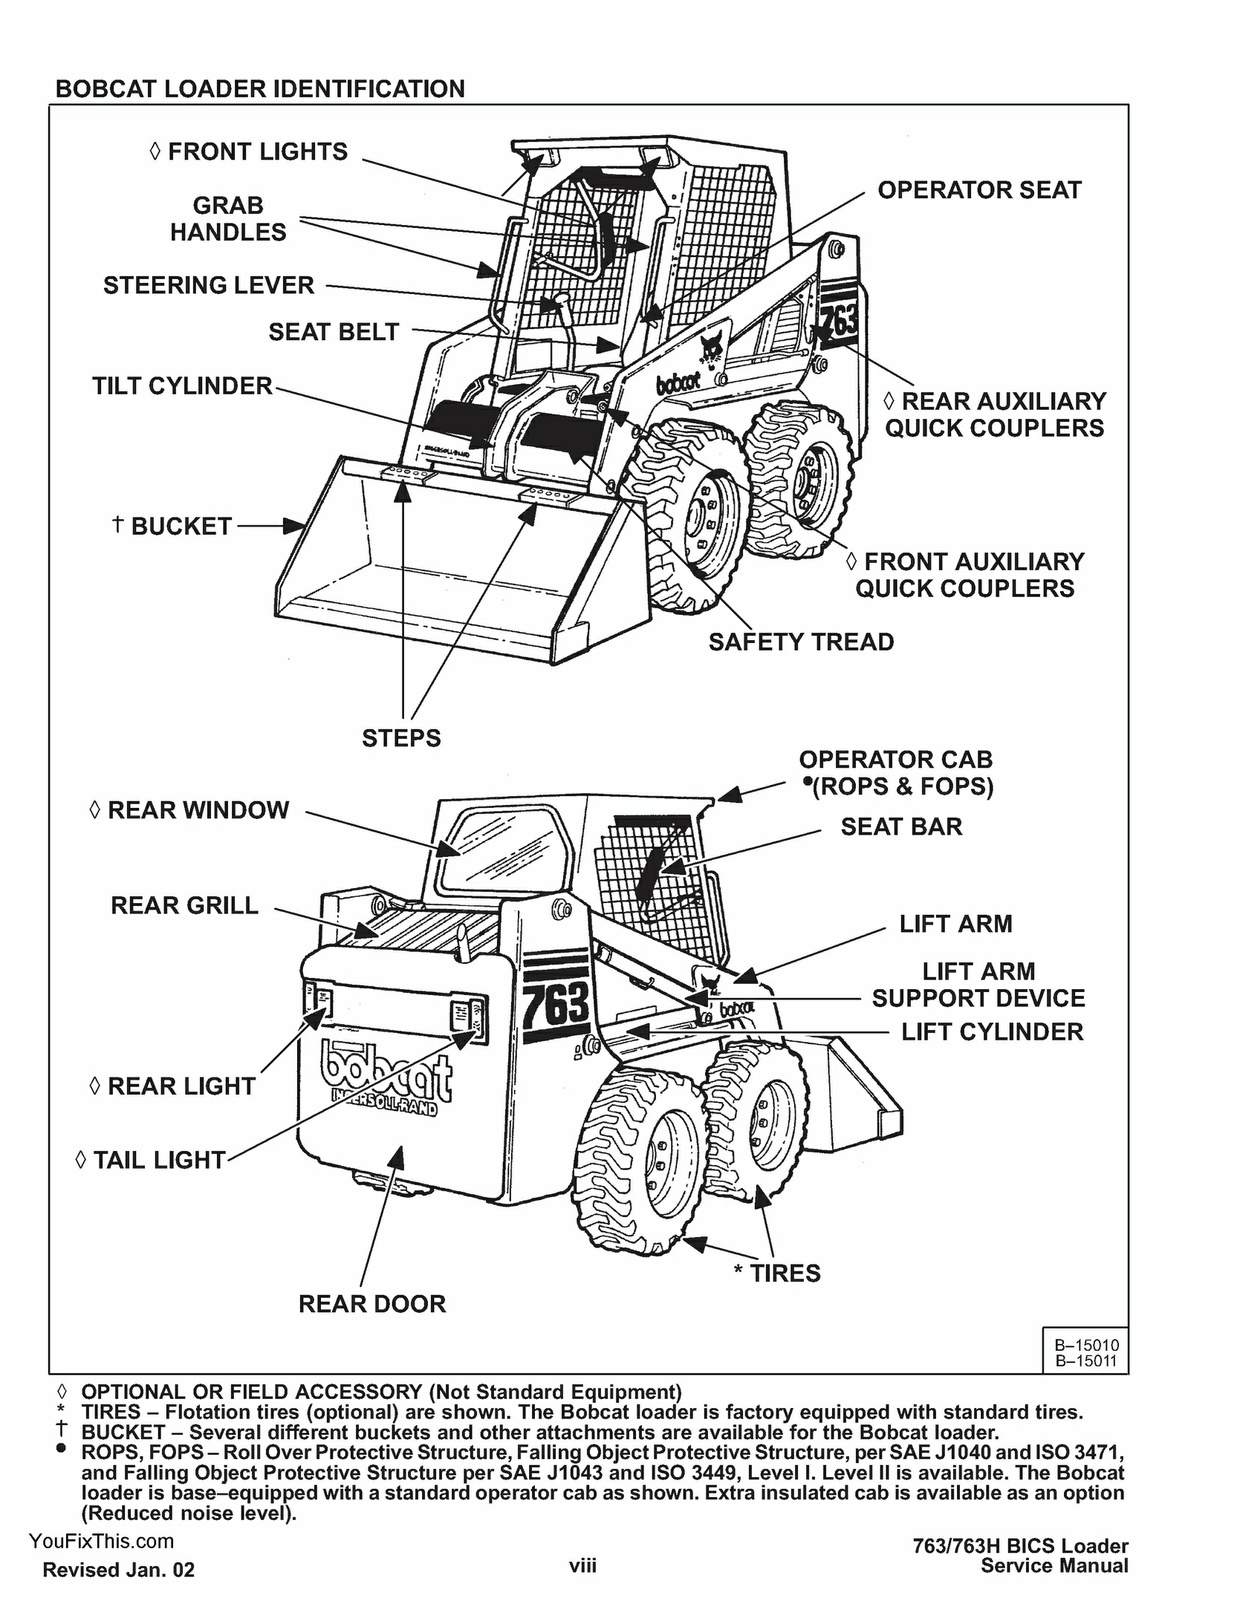 Bobcat 763 Skid Steer Loader Repair Service Manual